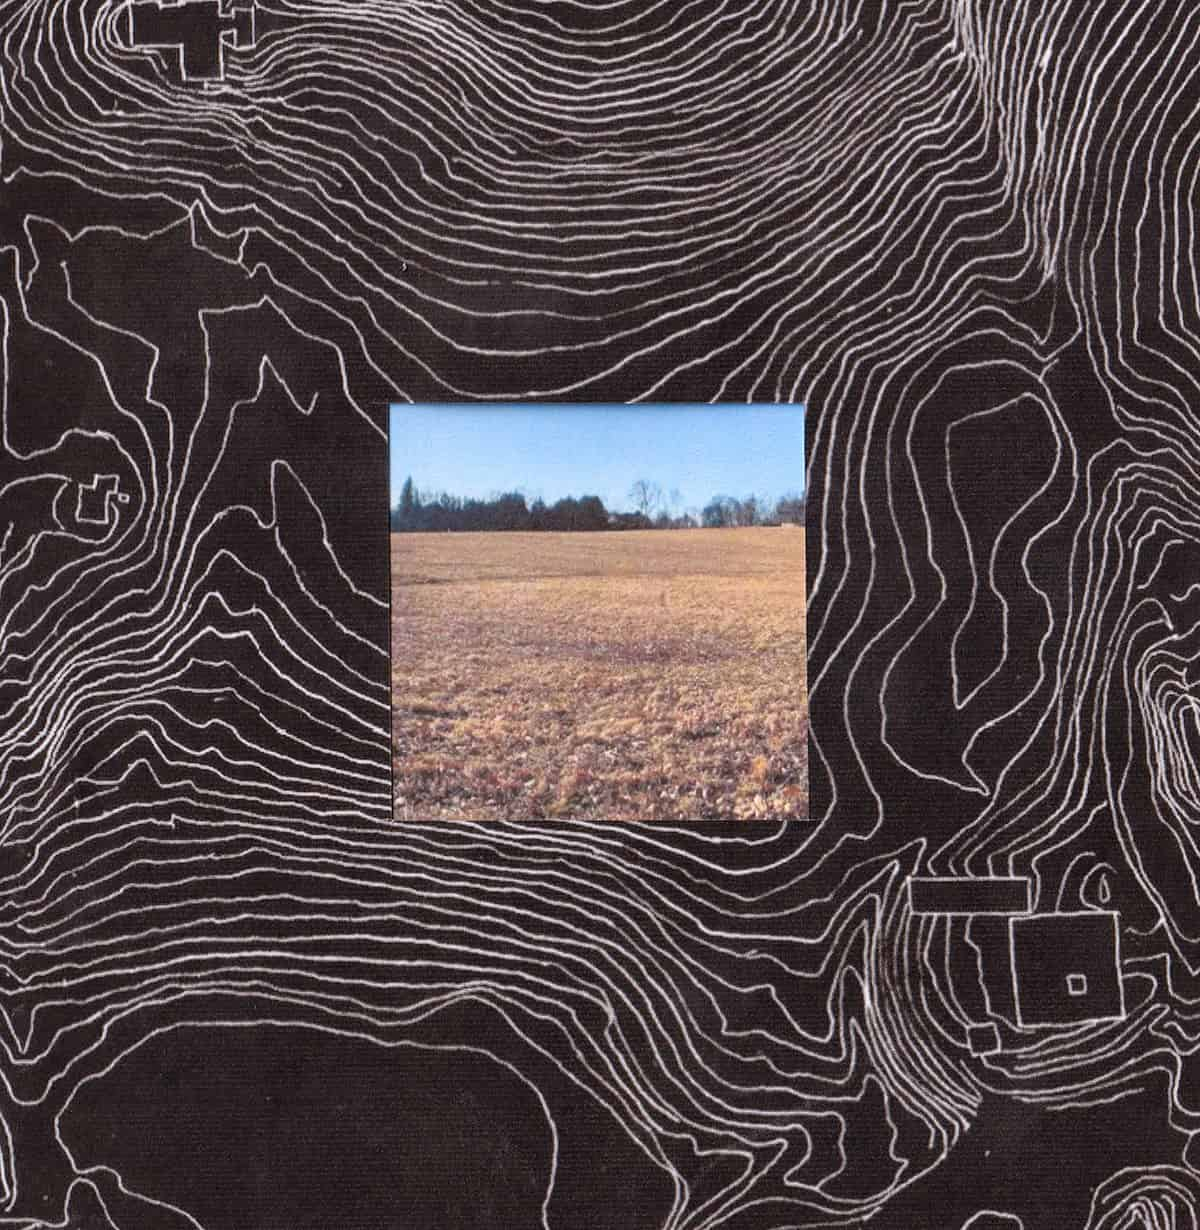 photograph of field placed in the middle of a topographical drawing in white chalk on black paper